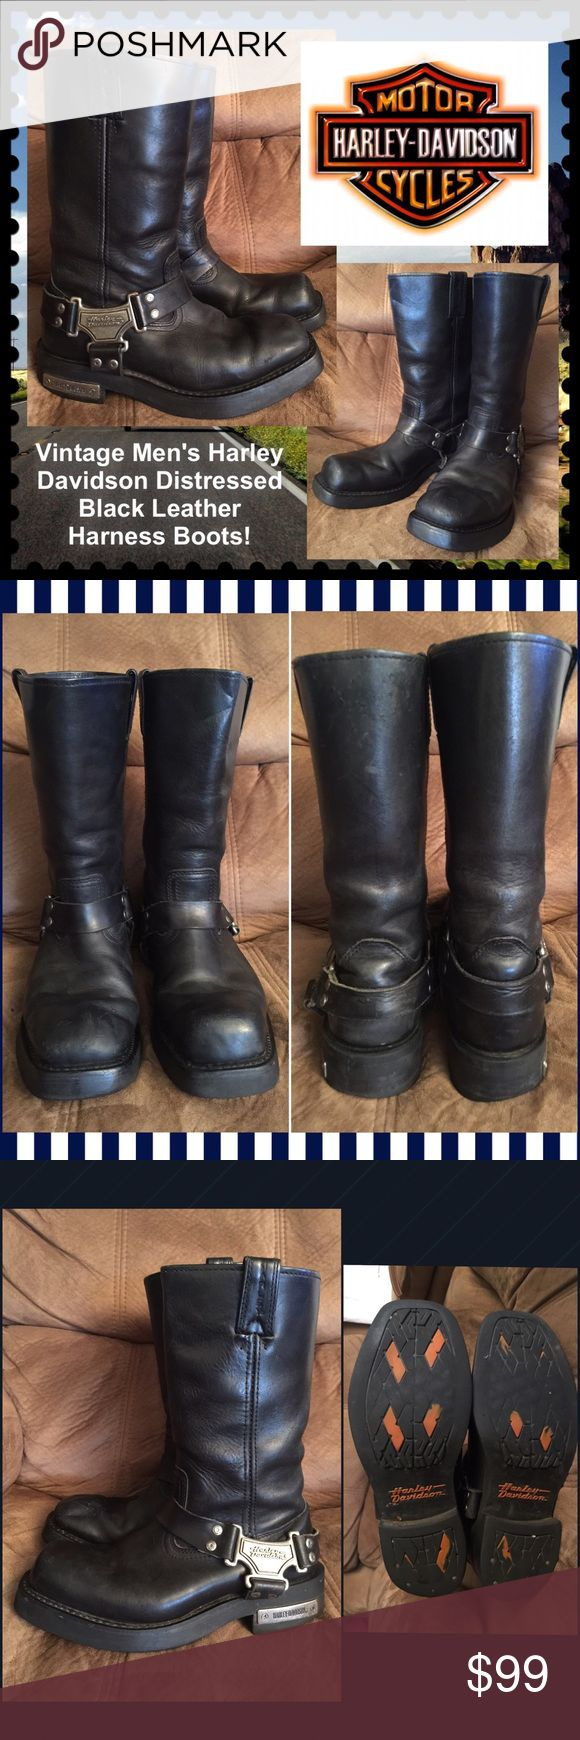 "Vtg Men's Harley Davidson Leather Harness Boots! Vintage Men's Harley Davidson Black Leather Harness Boots! Features: 100% authentic, black nubuck leather, mid-calf, pull on - harness style, square toe harness boot, iconic Harley orange soles. Size 7.5 men = size 9 women. 14 1/2"" top opening, Heel: 1 1/2"", overall height is 12"". Wear on heels, scuffing & marks on the exterior. Awesome cool distressed look! Good condition. Offers welcomed! Harley-Davidson Shoes Boots"